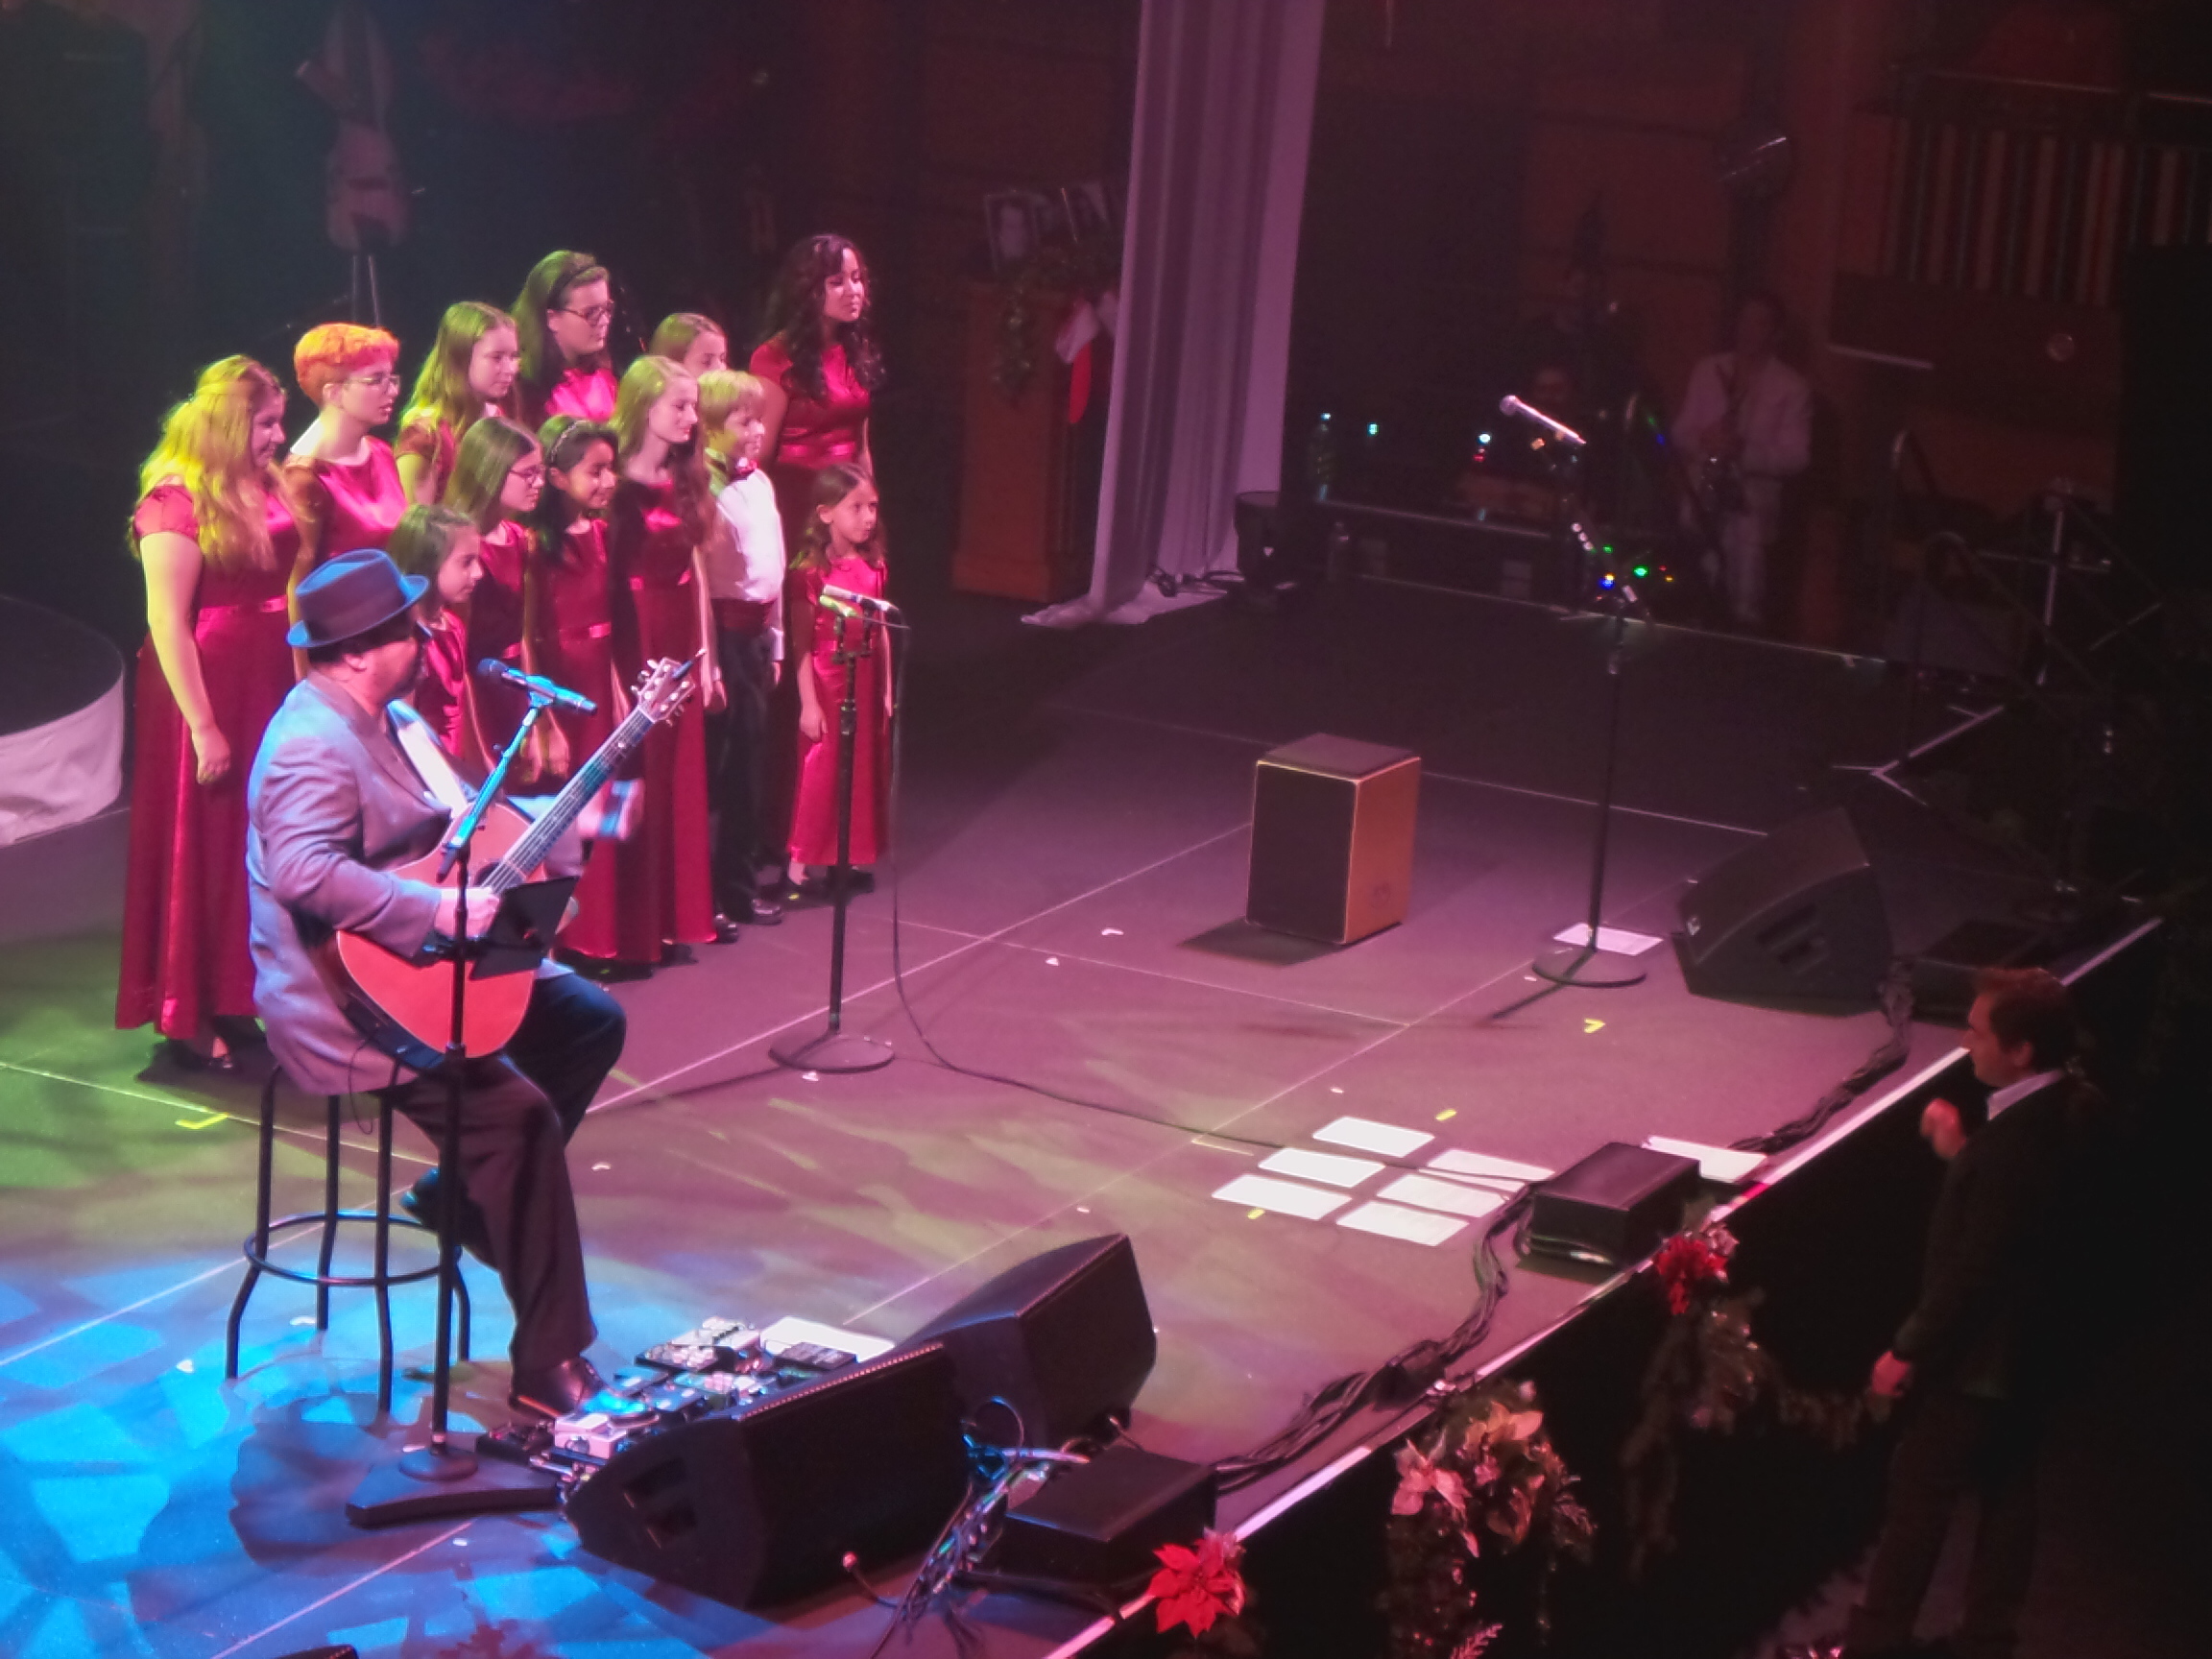 MUSYCA Children's Choir sings with Christopher Cross